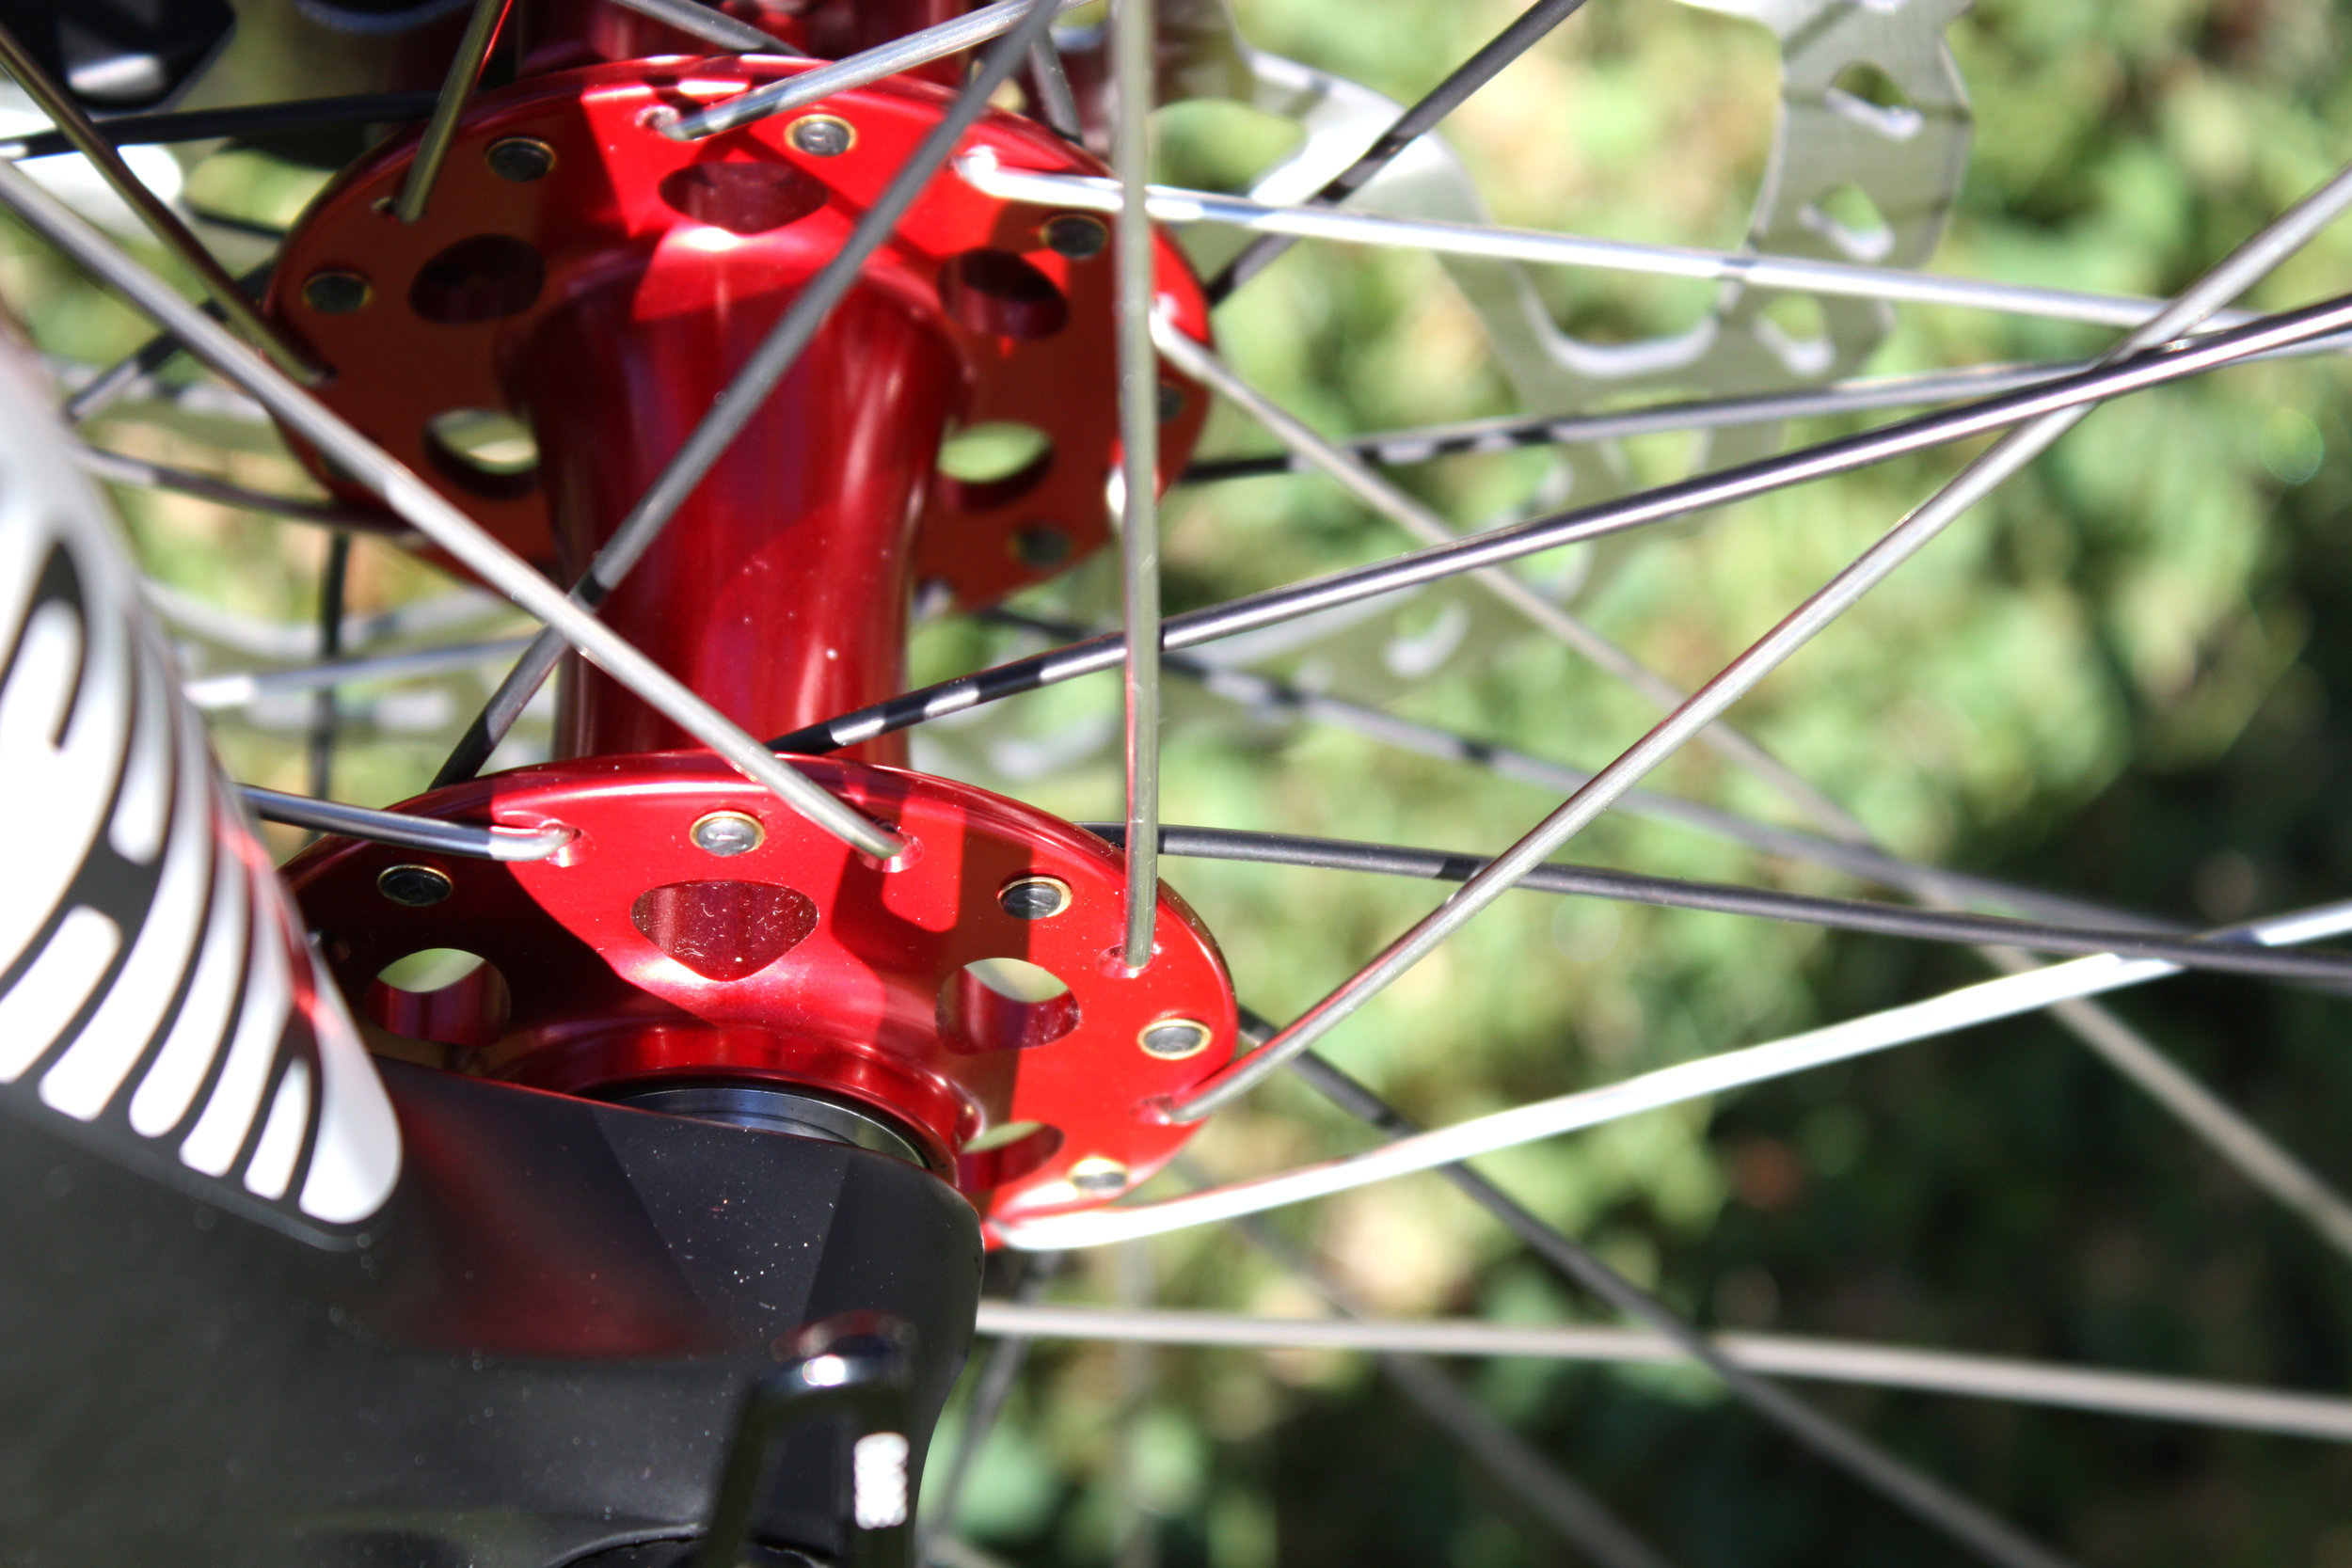 Attention to detail. Washered spokes to add durability. Even black and silver spokes for extra visual effect.